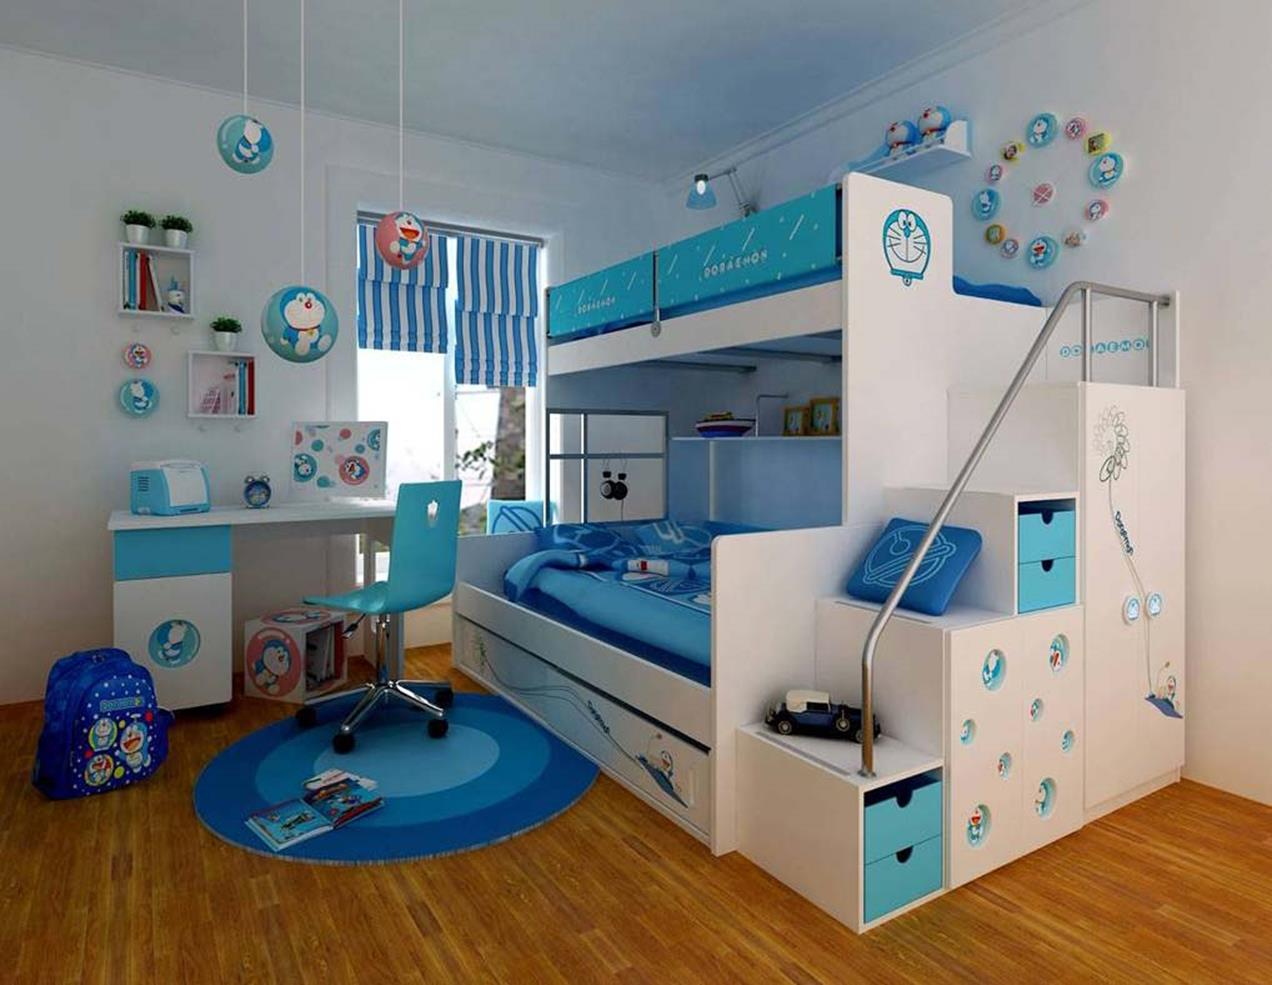 Color Full Kids Room Decorating Ideas On A Budget 7